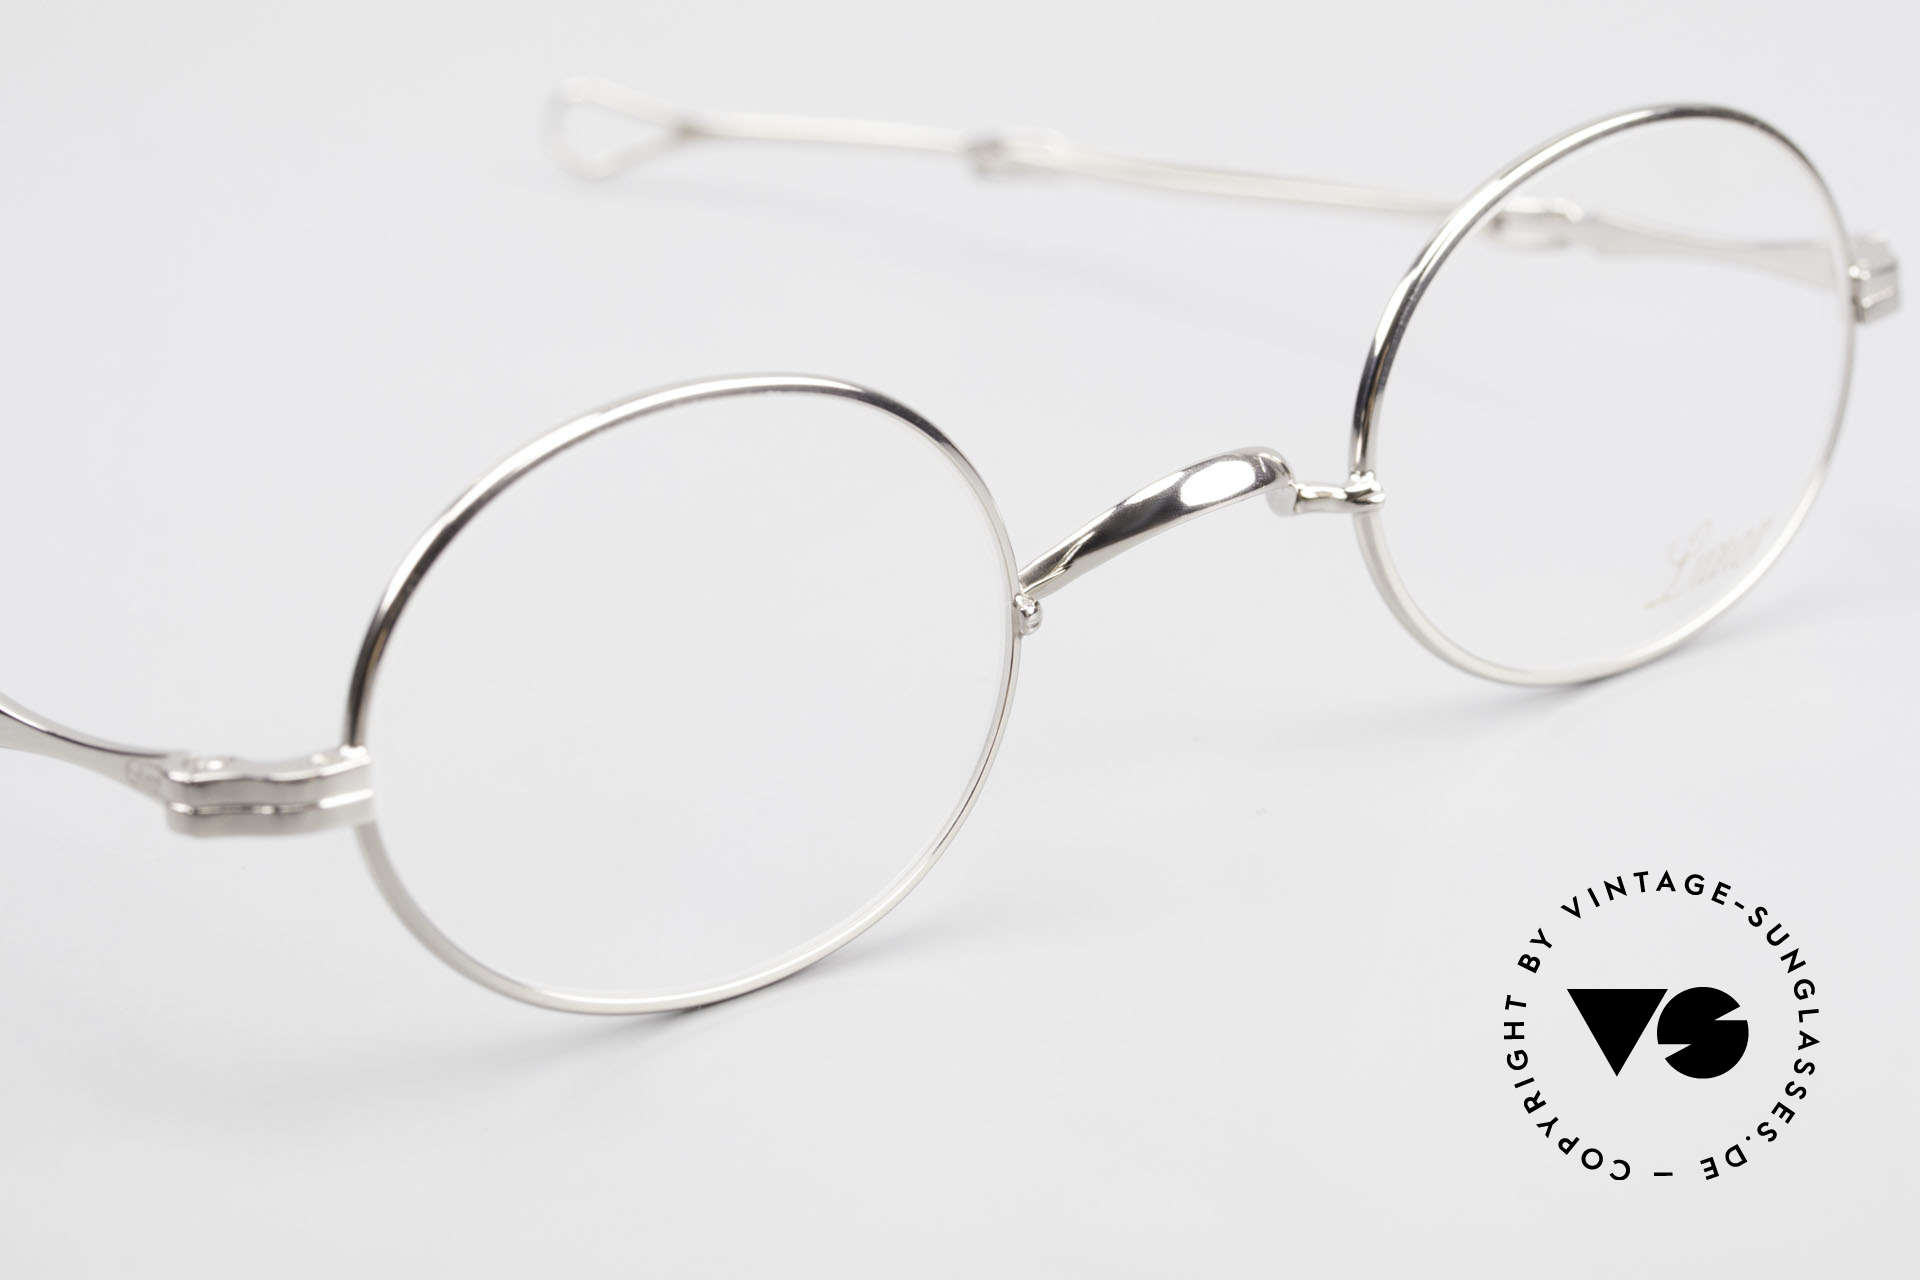 Lunor I 10 Telescopic Oval Eyeglasses Slide Temples, unworn RARITY (for all lovers of quality) from app. 1999, Made for Men and Women